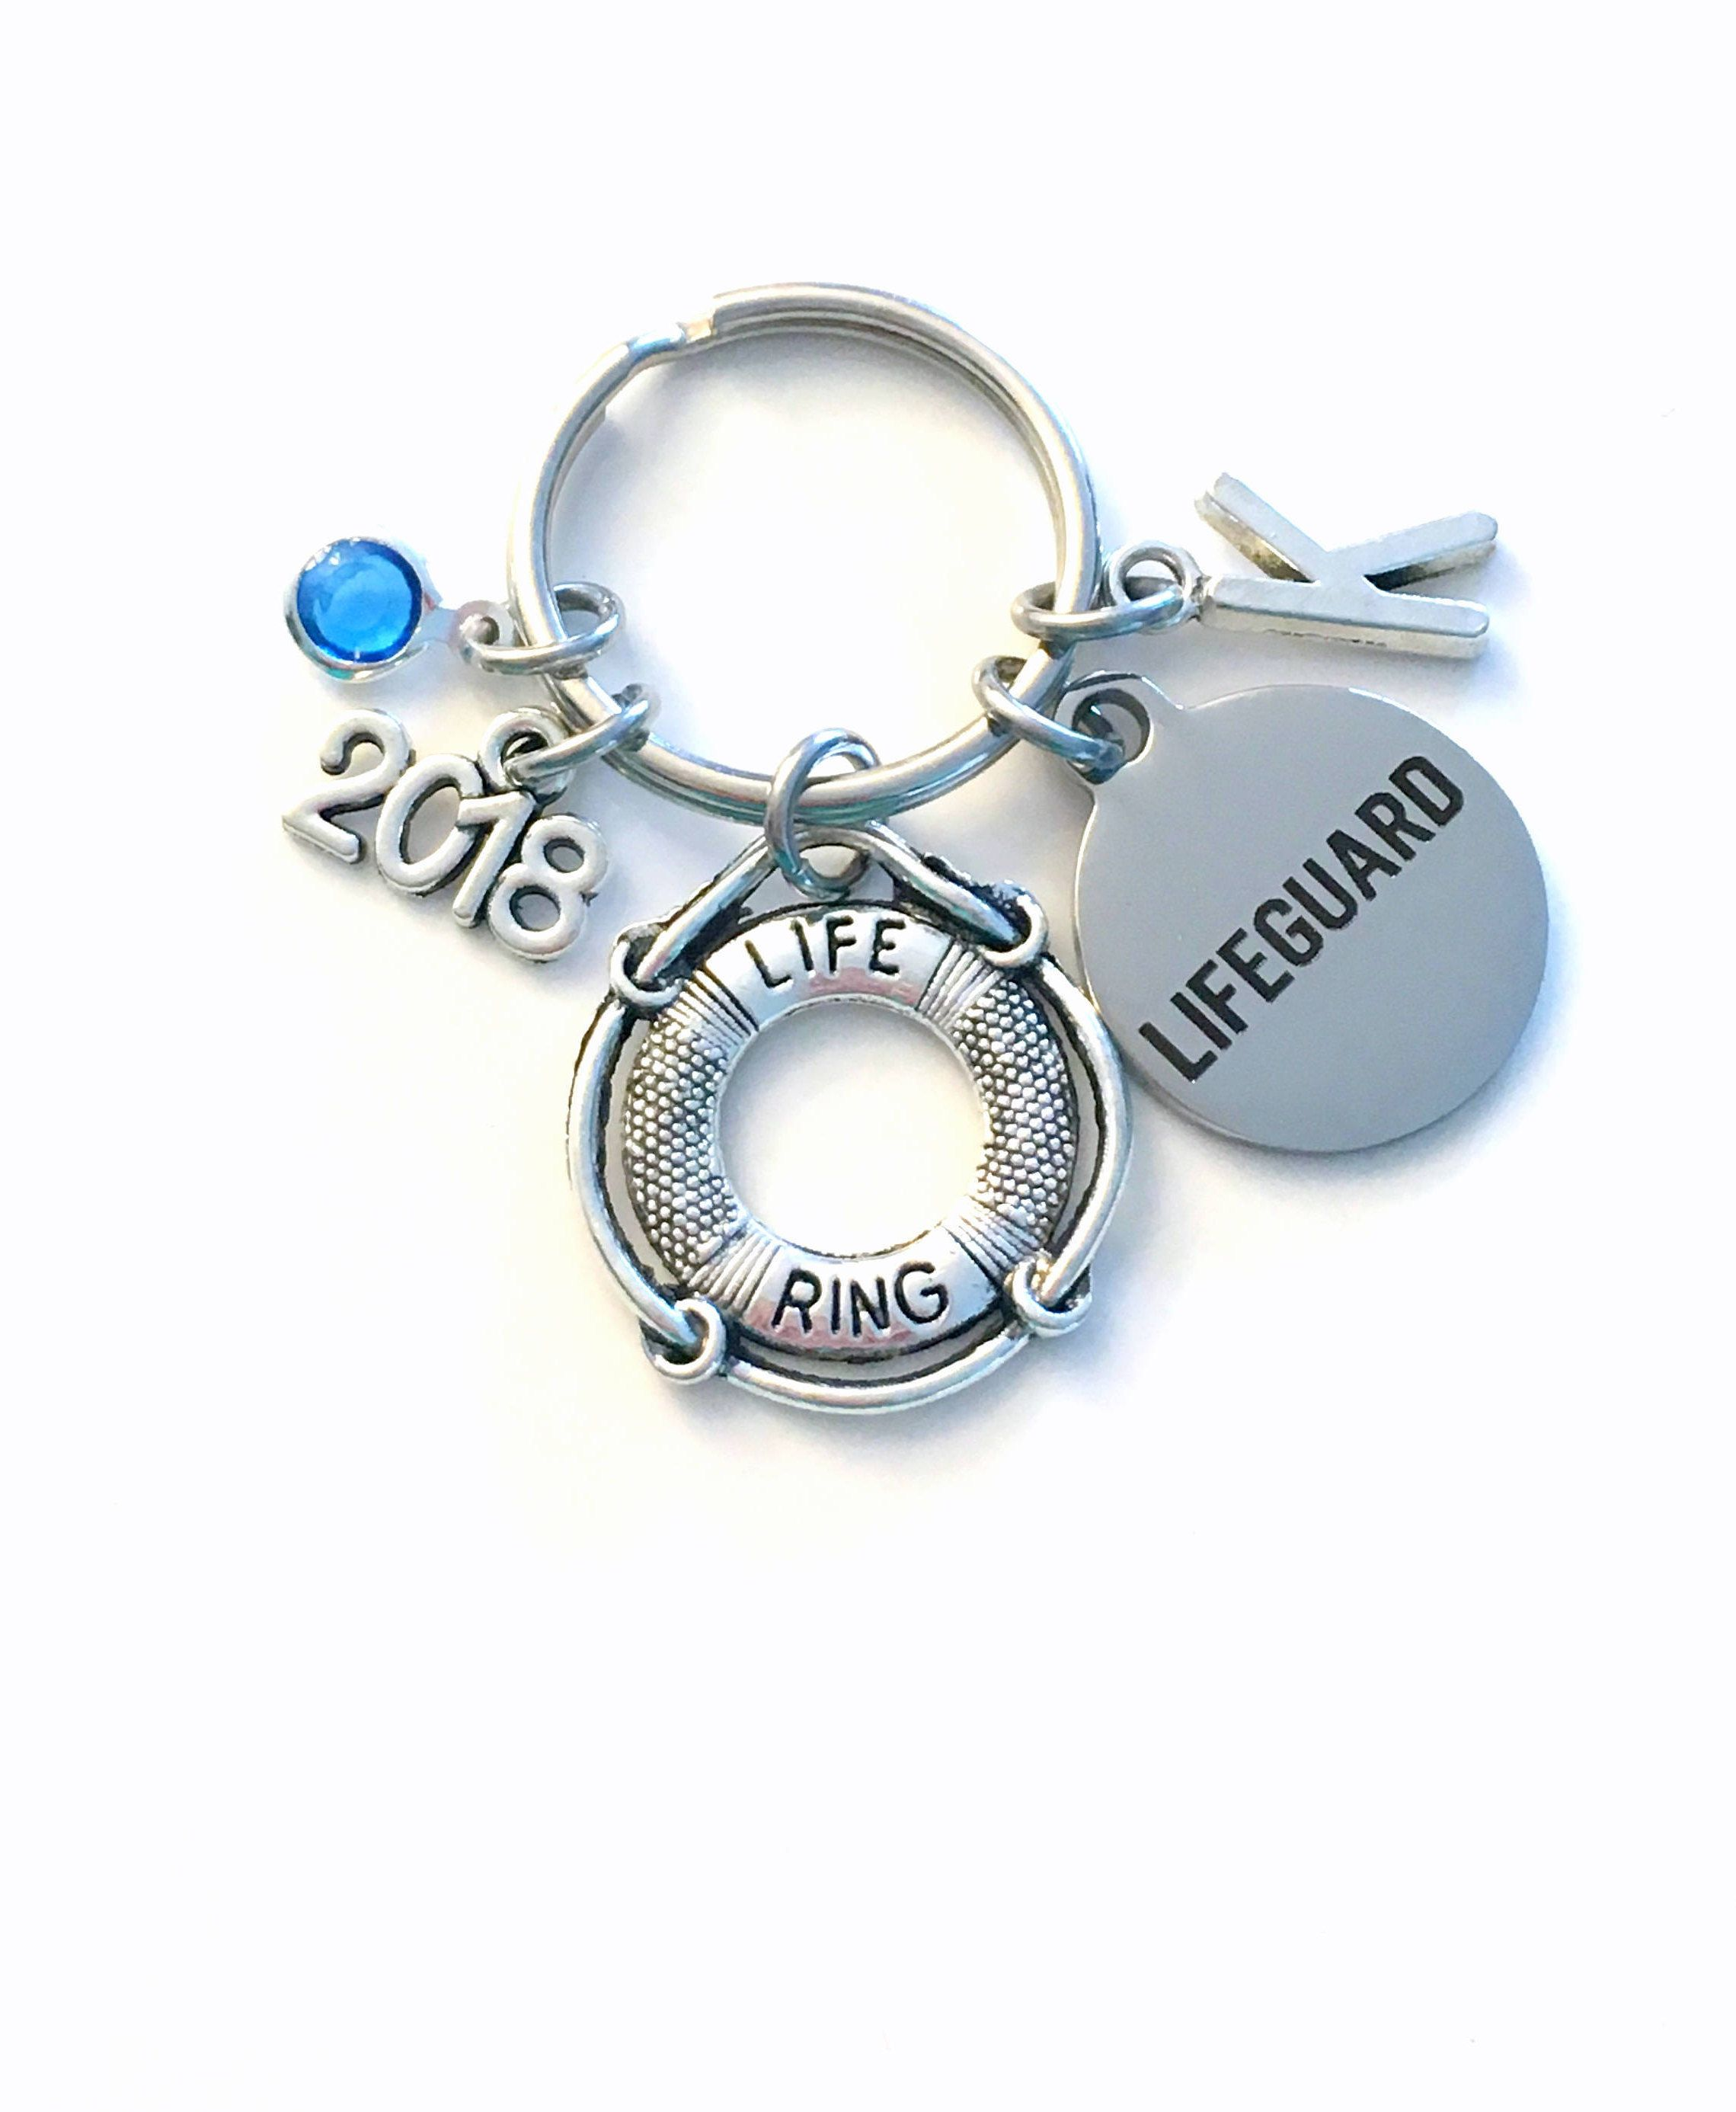 8fba356b872 Graduation Gift for Lifeguard Keychain